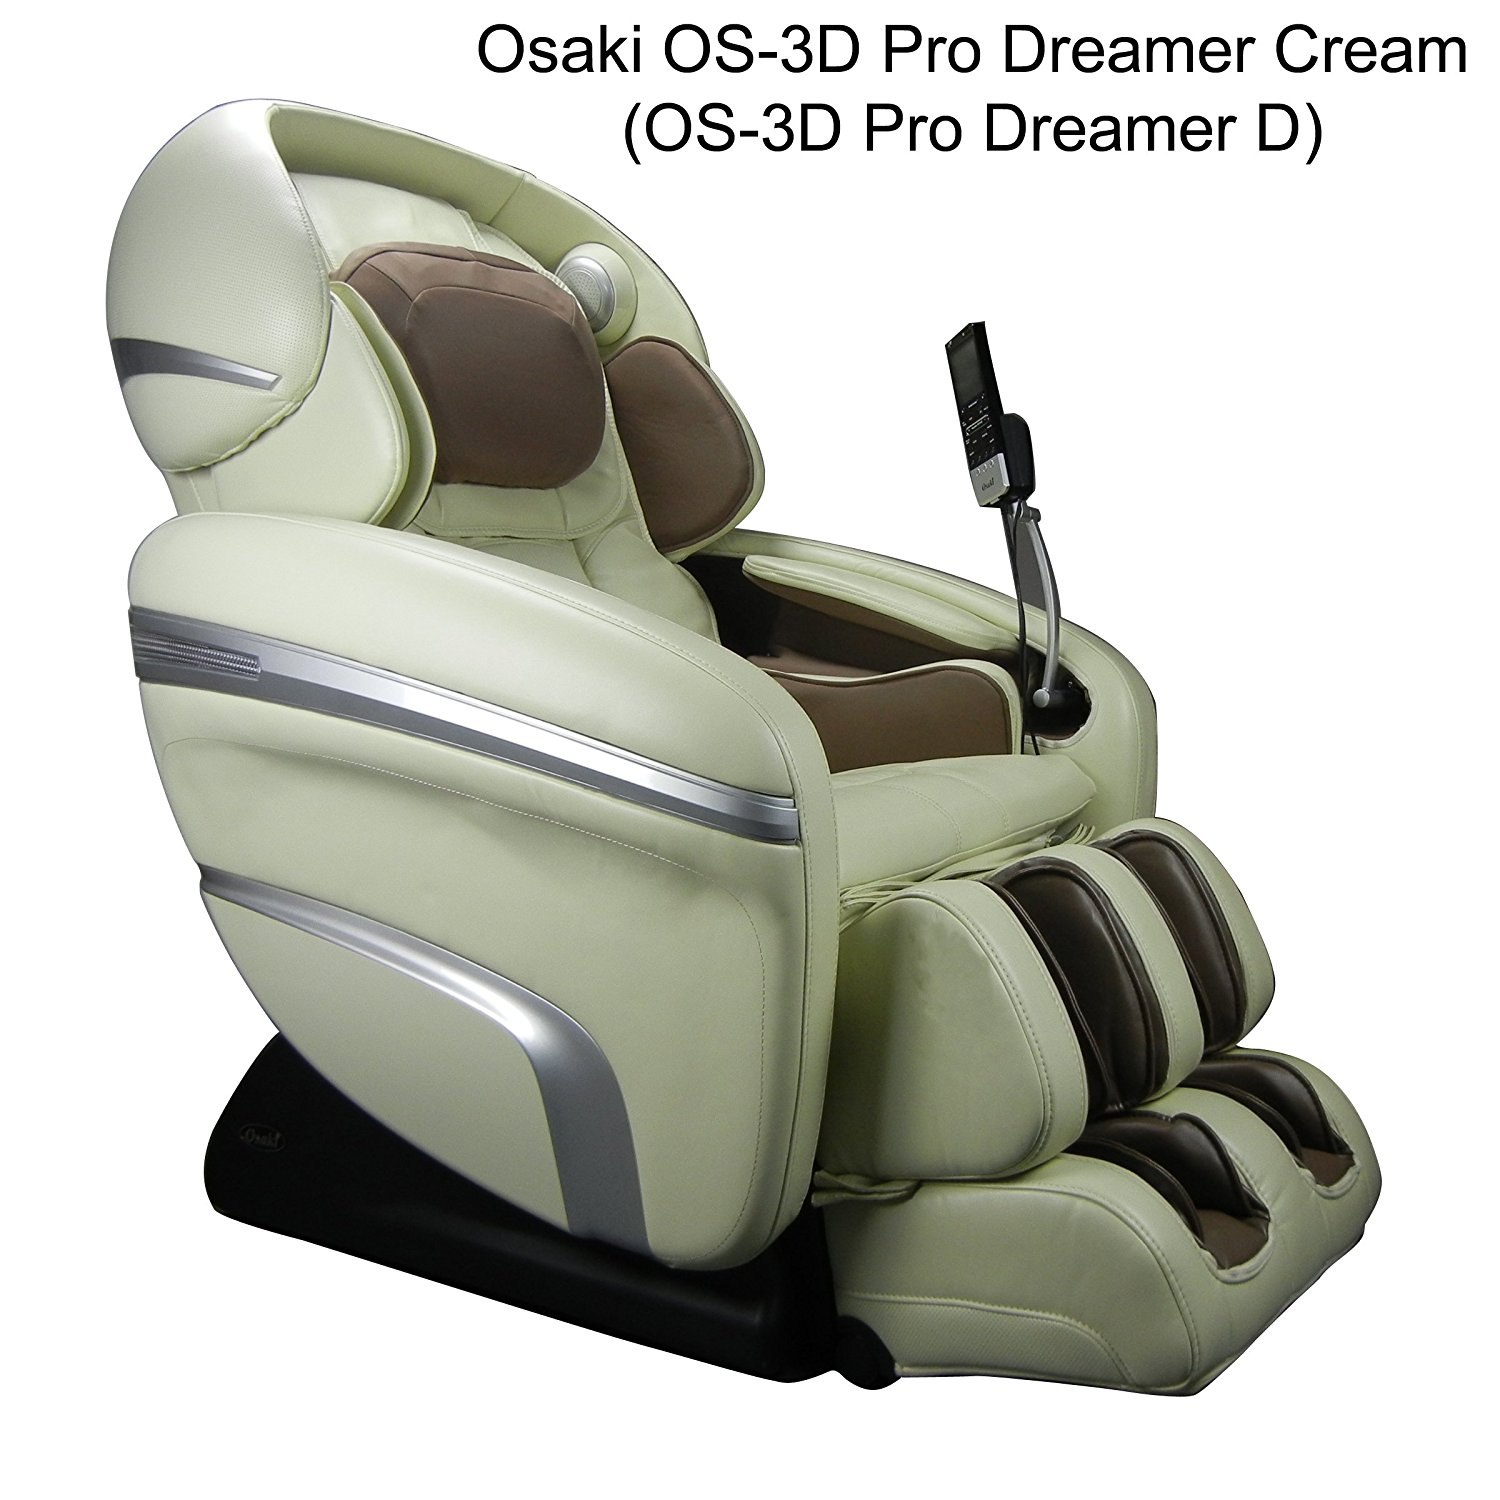 Osaki OS-3D Pro Dreamer D Model OS-3D Pro Dreamer Zero Gravity Massage Chair, Cream, Large LCD Display, 3D Massage Technology, 2 Stage Zero Gravity, 2nd Generation S-Track, Accupoint Technology